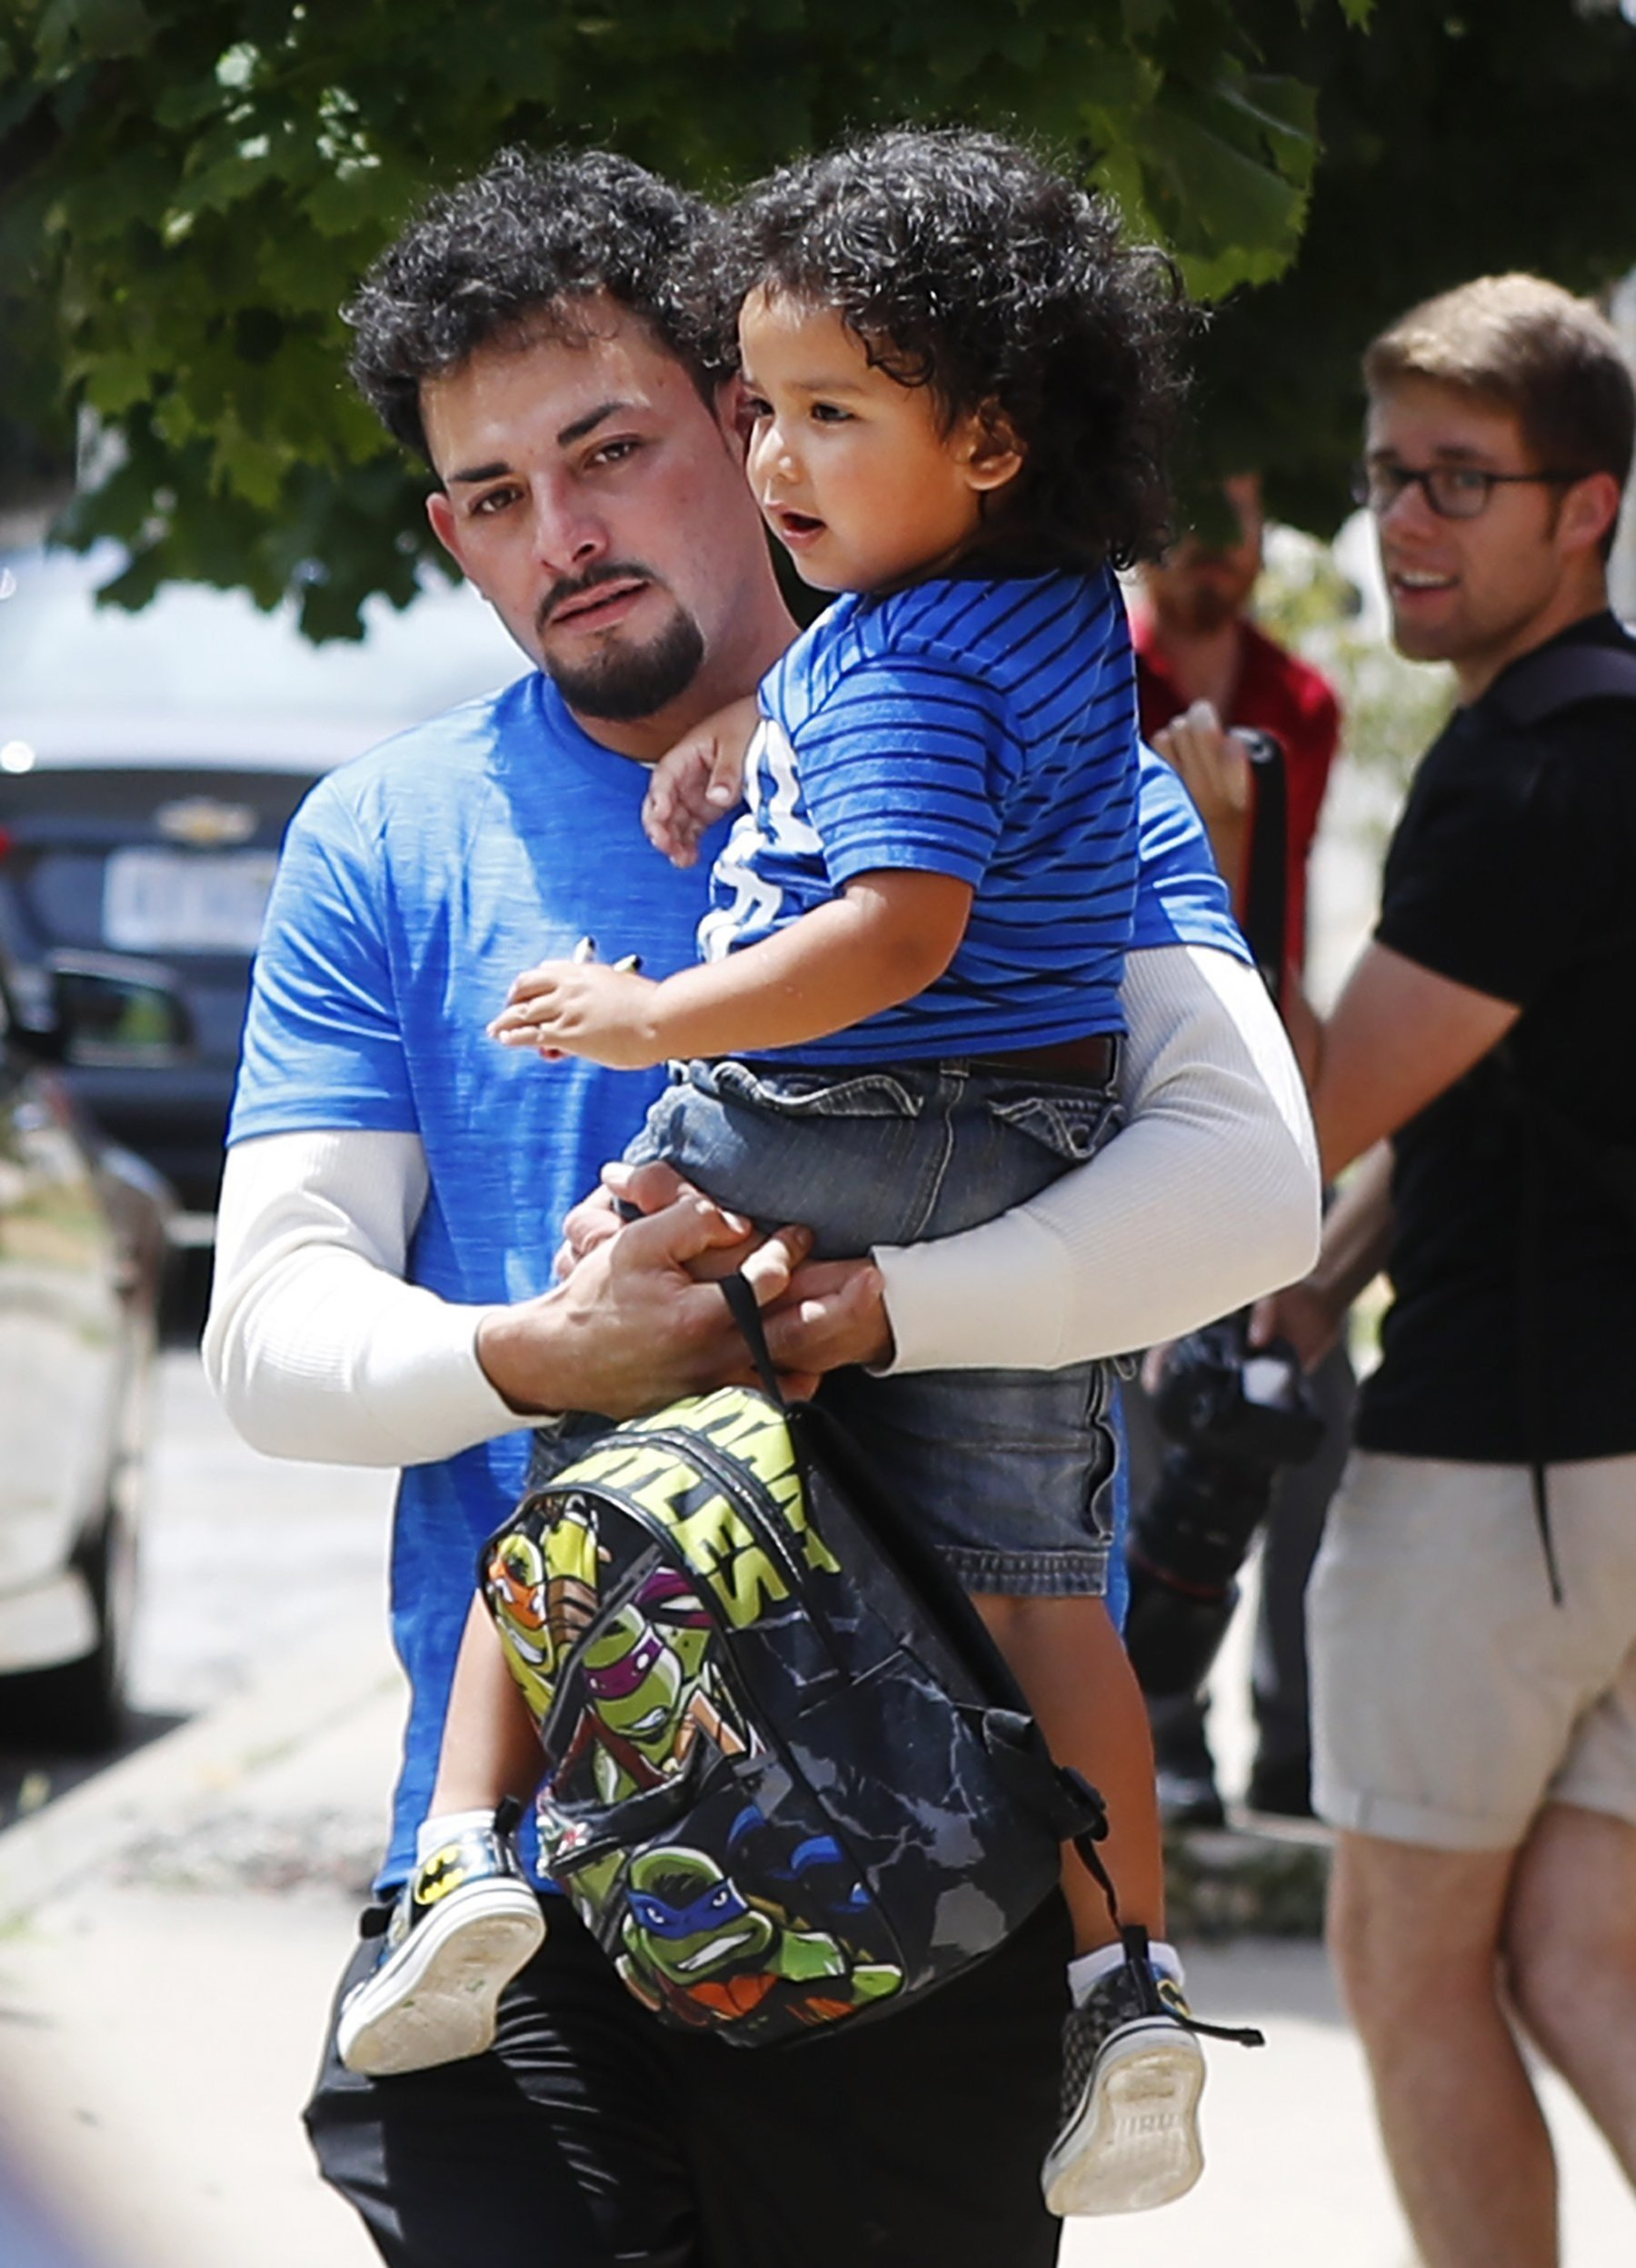 Ever Reyes Mejia, of Honduras, is reunited with his son at a U.S. Immigration and Customs Enforcement in Michigan.